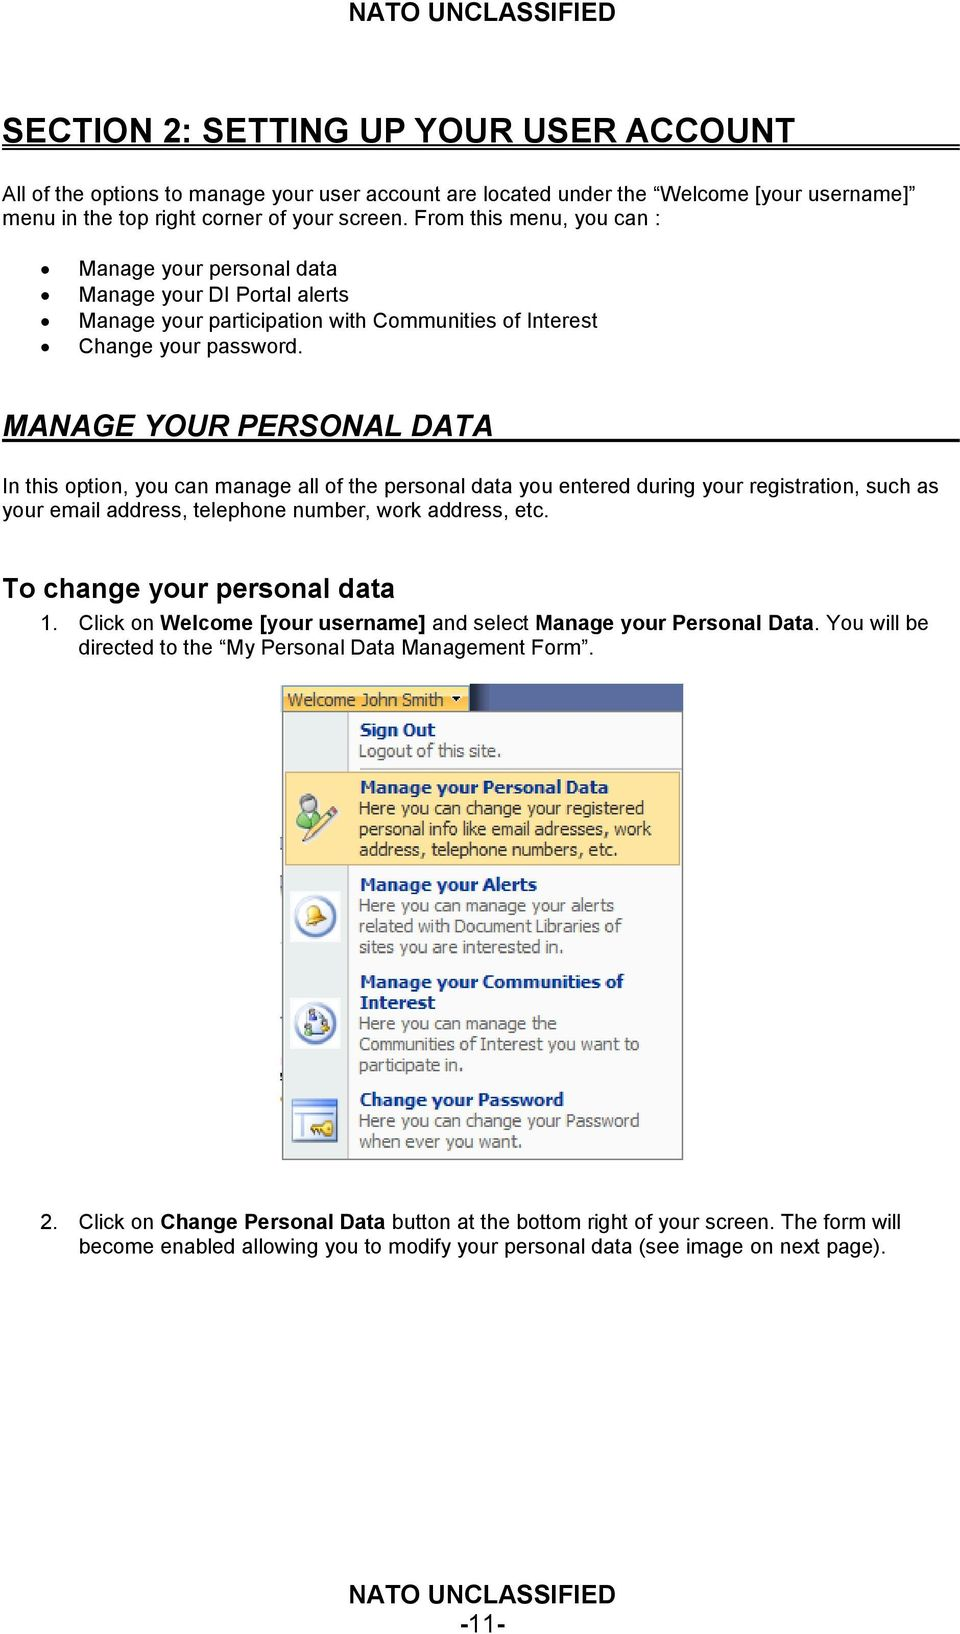 MANAGE YOUR PERSONAL DATA In this option, you can manage all of the personal data you entered during your registration, such as your email address, telephone number, work address, etc.